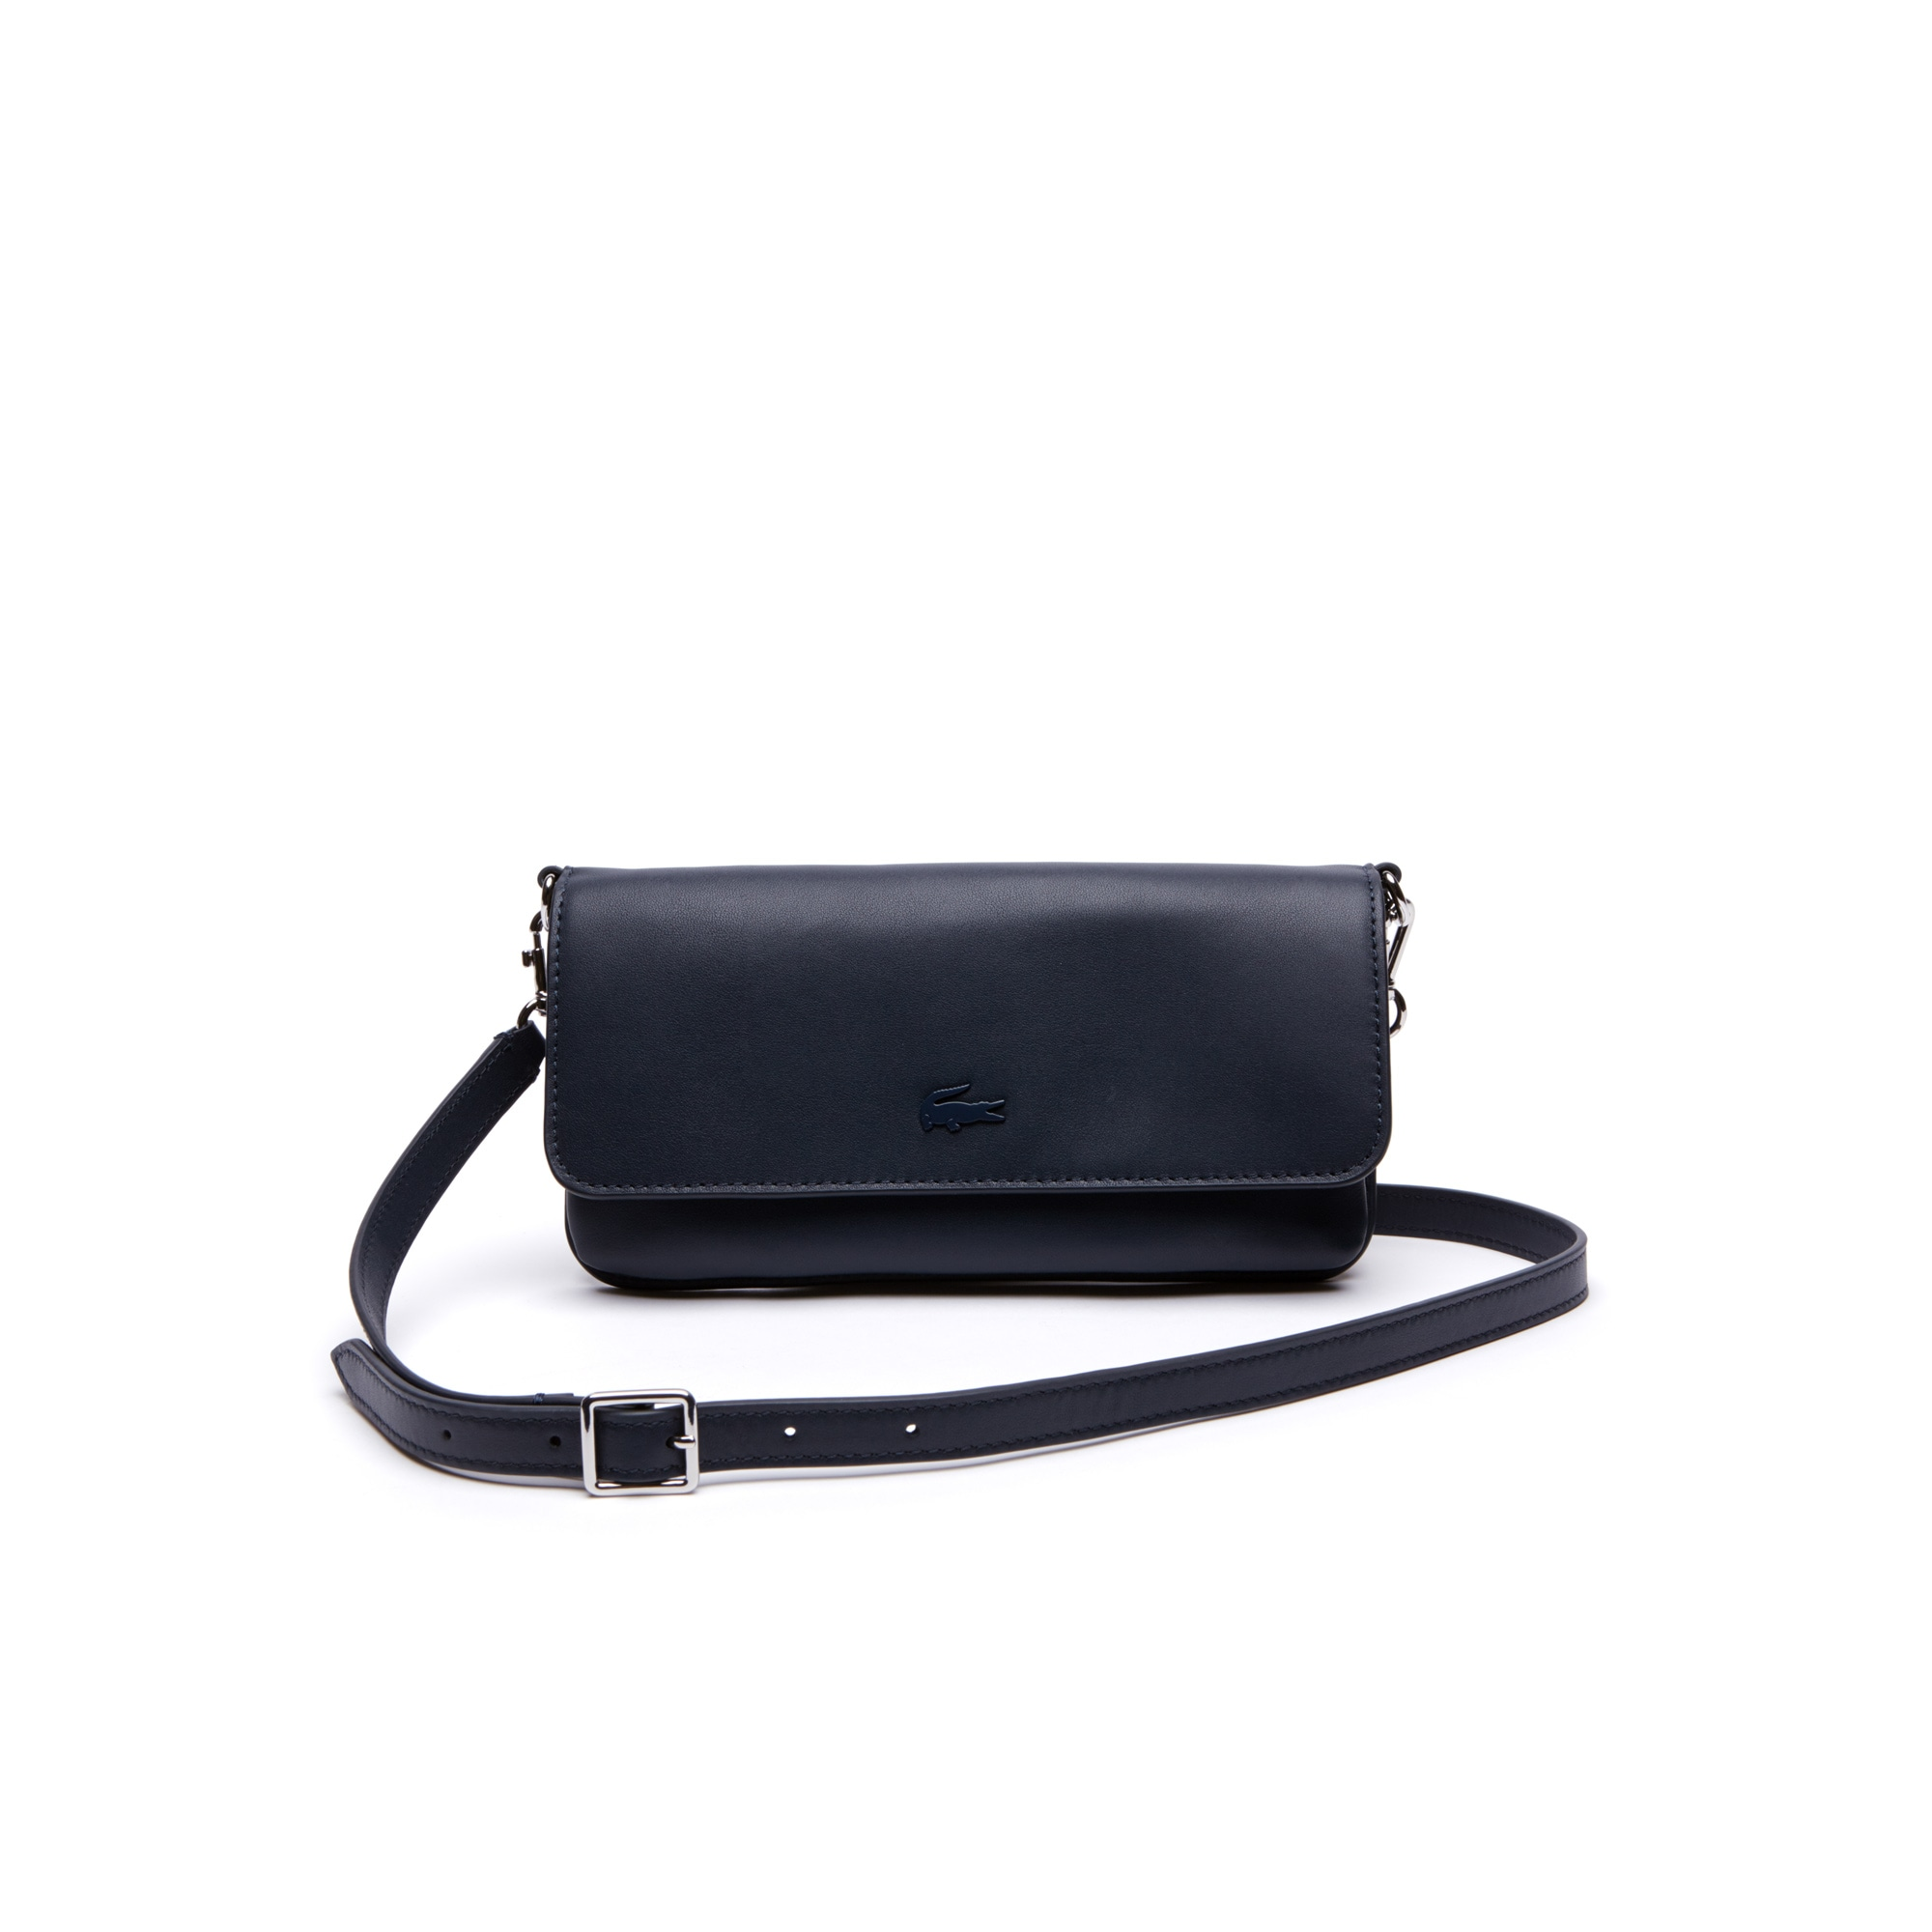 Portefeuille pochette Purity en cuir souple monochrome 6 cartes